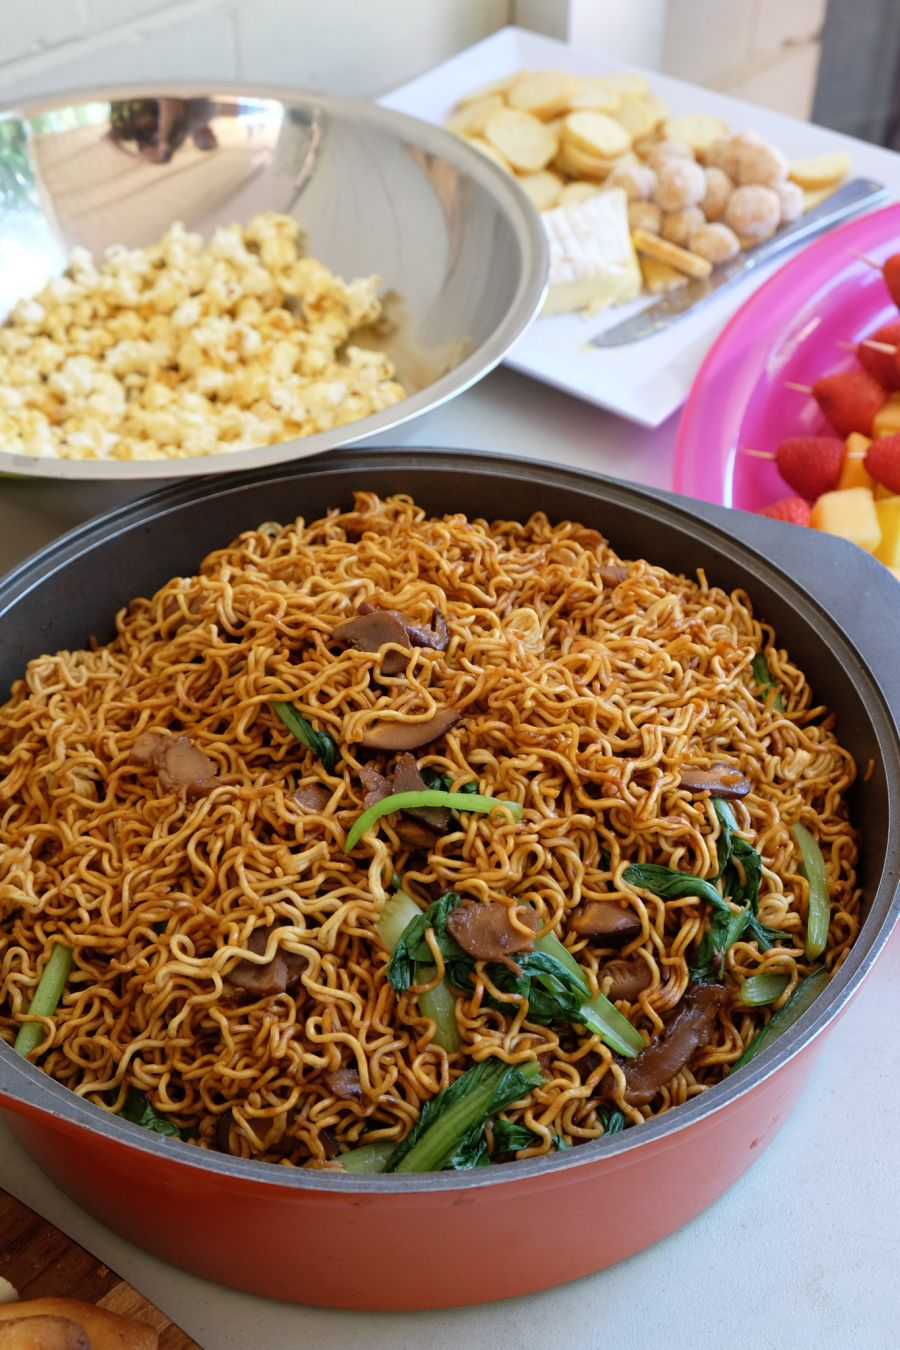 My mum's fried noodles for lunch